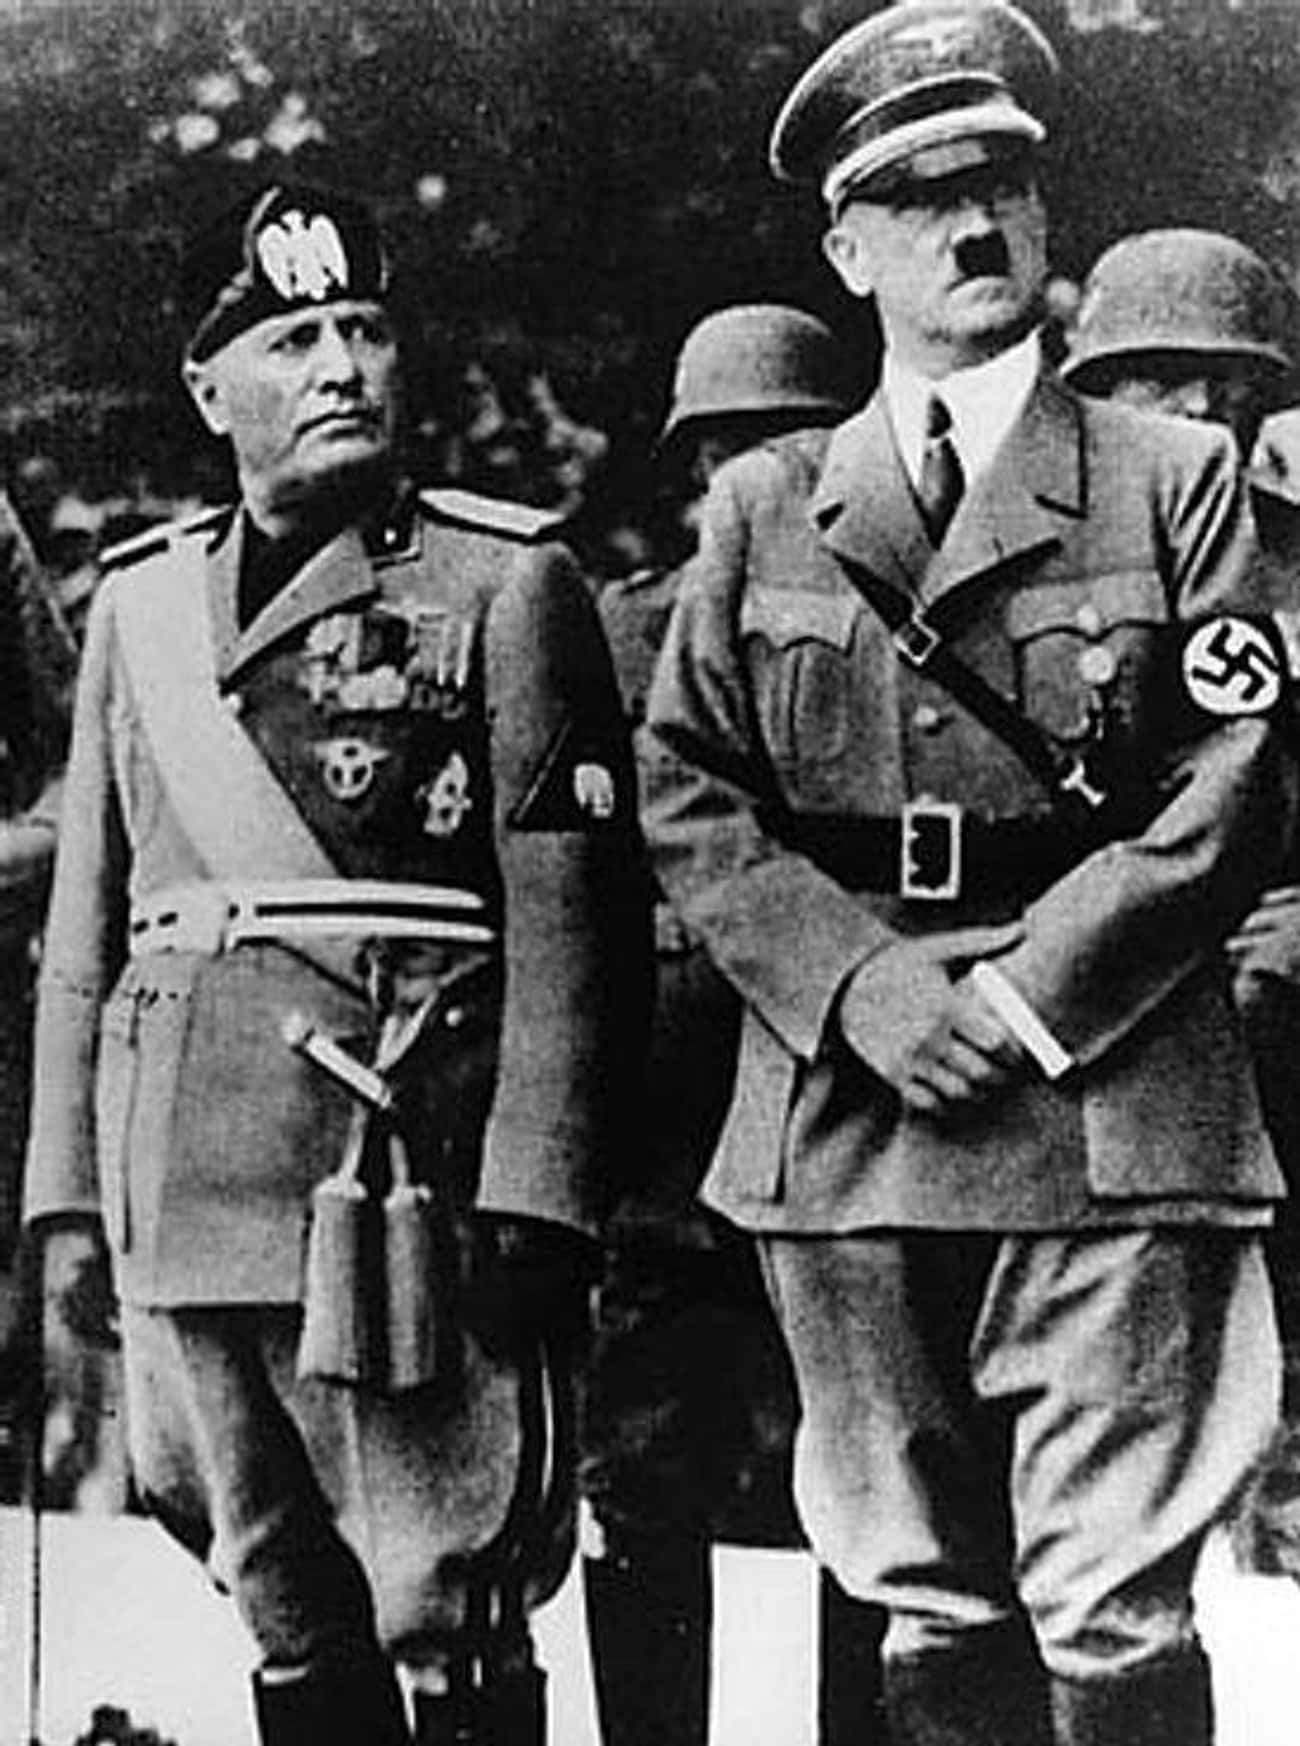 """Benito Mussolini, 5'6"""" is listed (or ranked) 23 on the list 26 Intimidating World Leaders Who You Never Realized Were Super Short"""